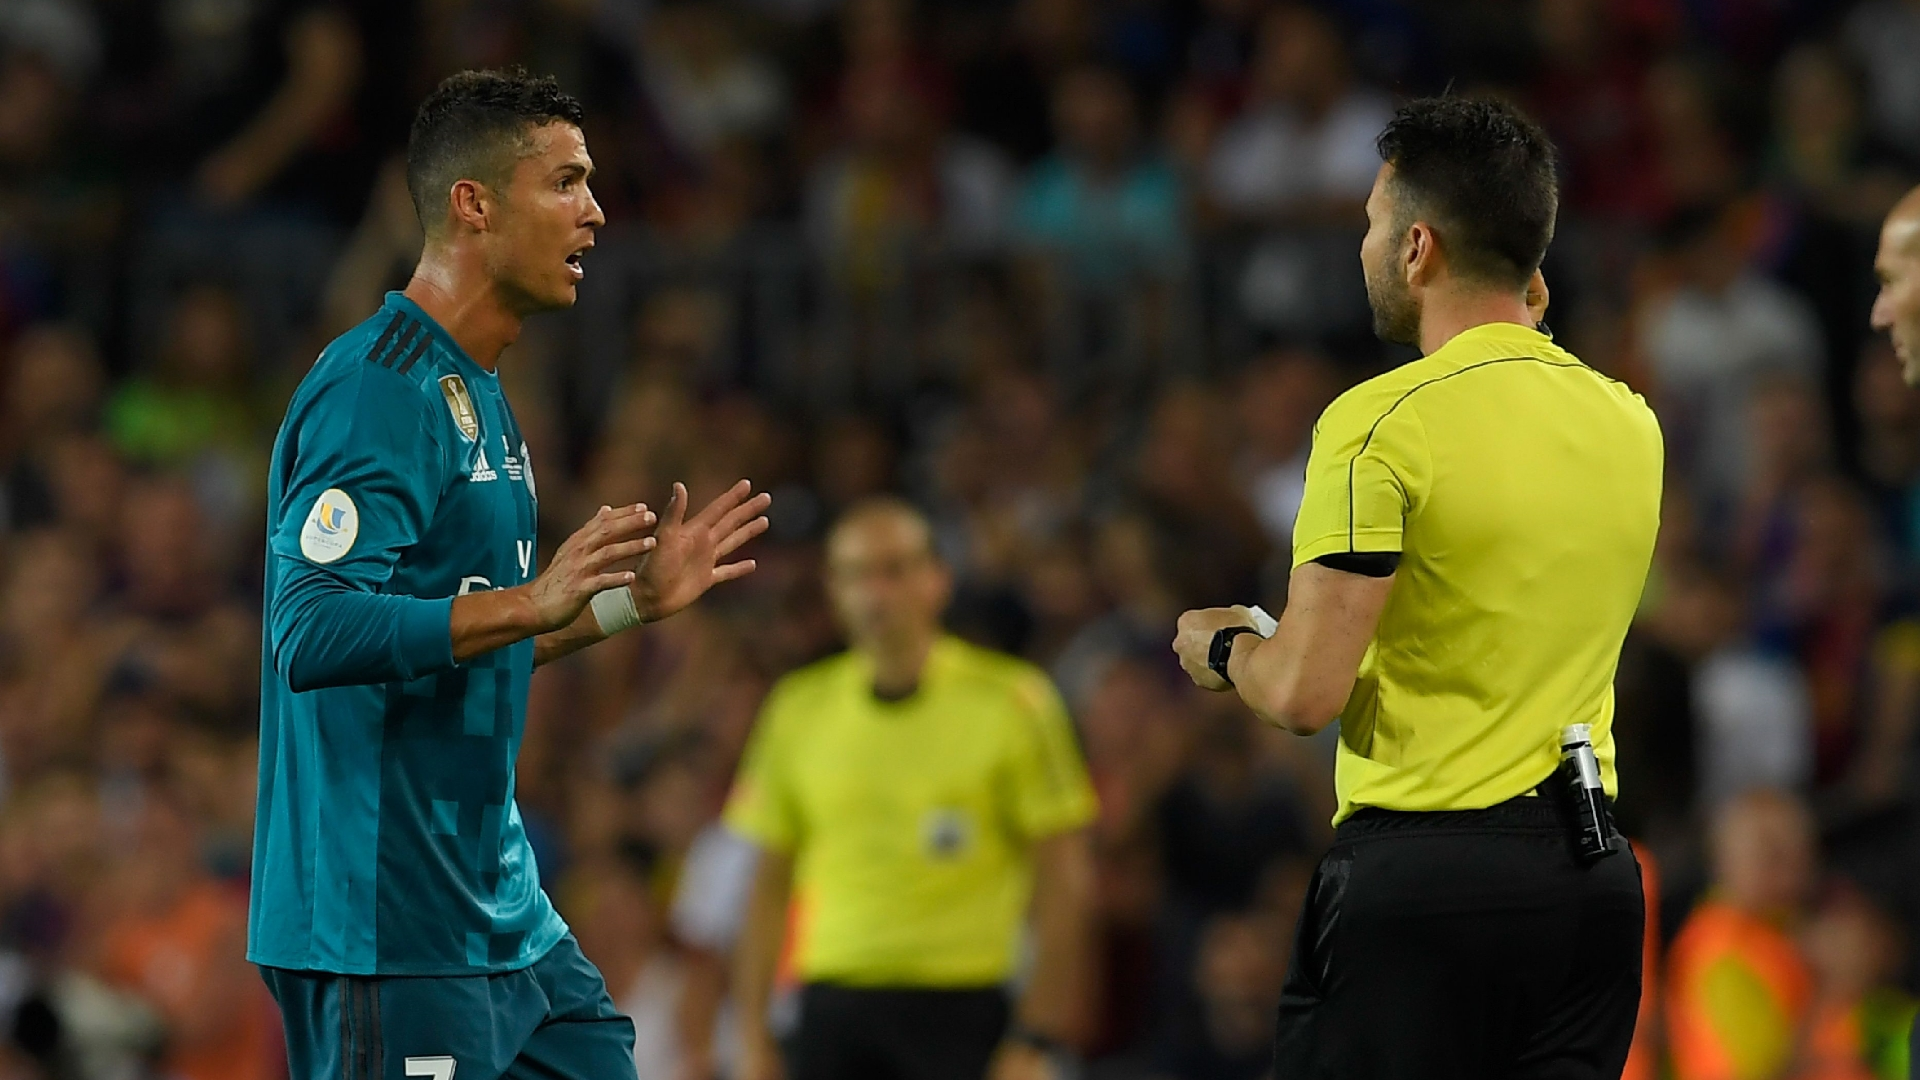 Cristiano Ronaldo, Real Madrid ref Supercopa